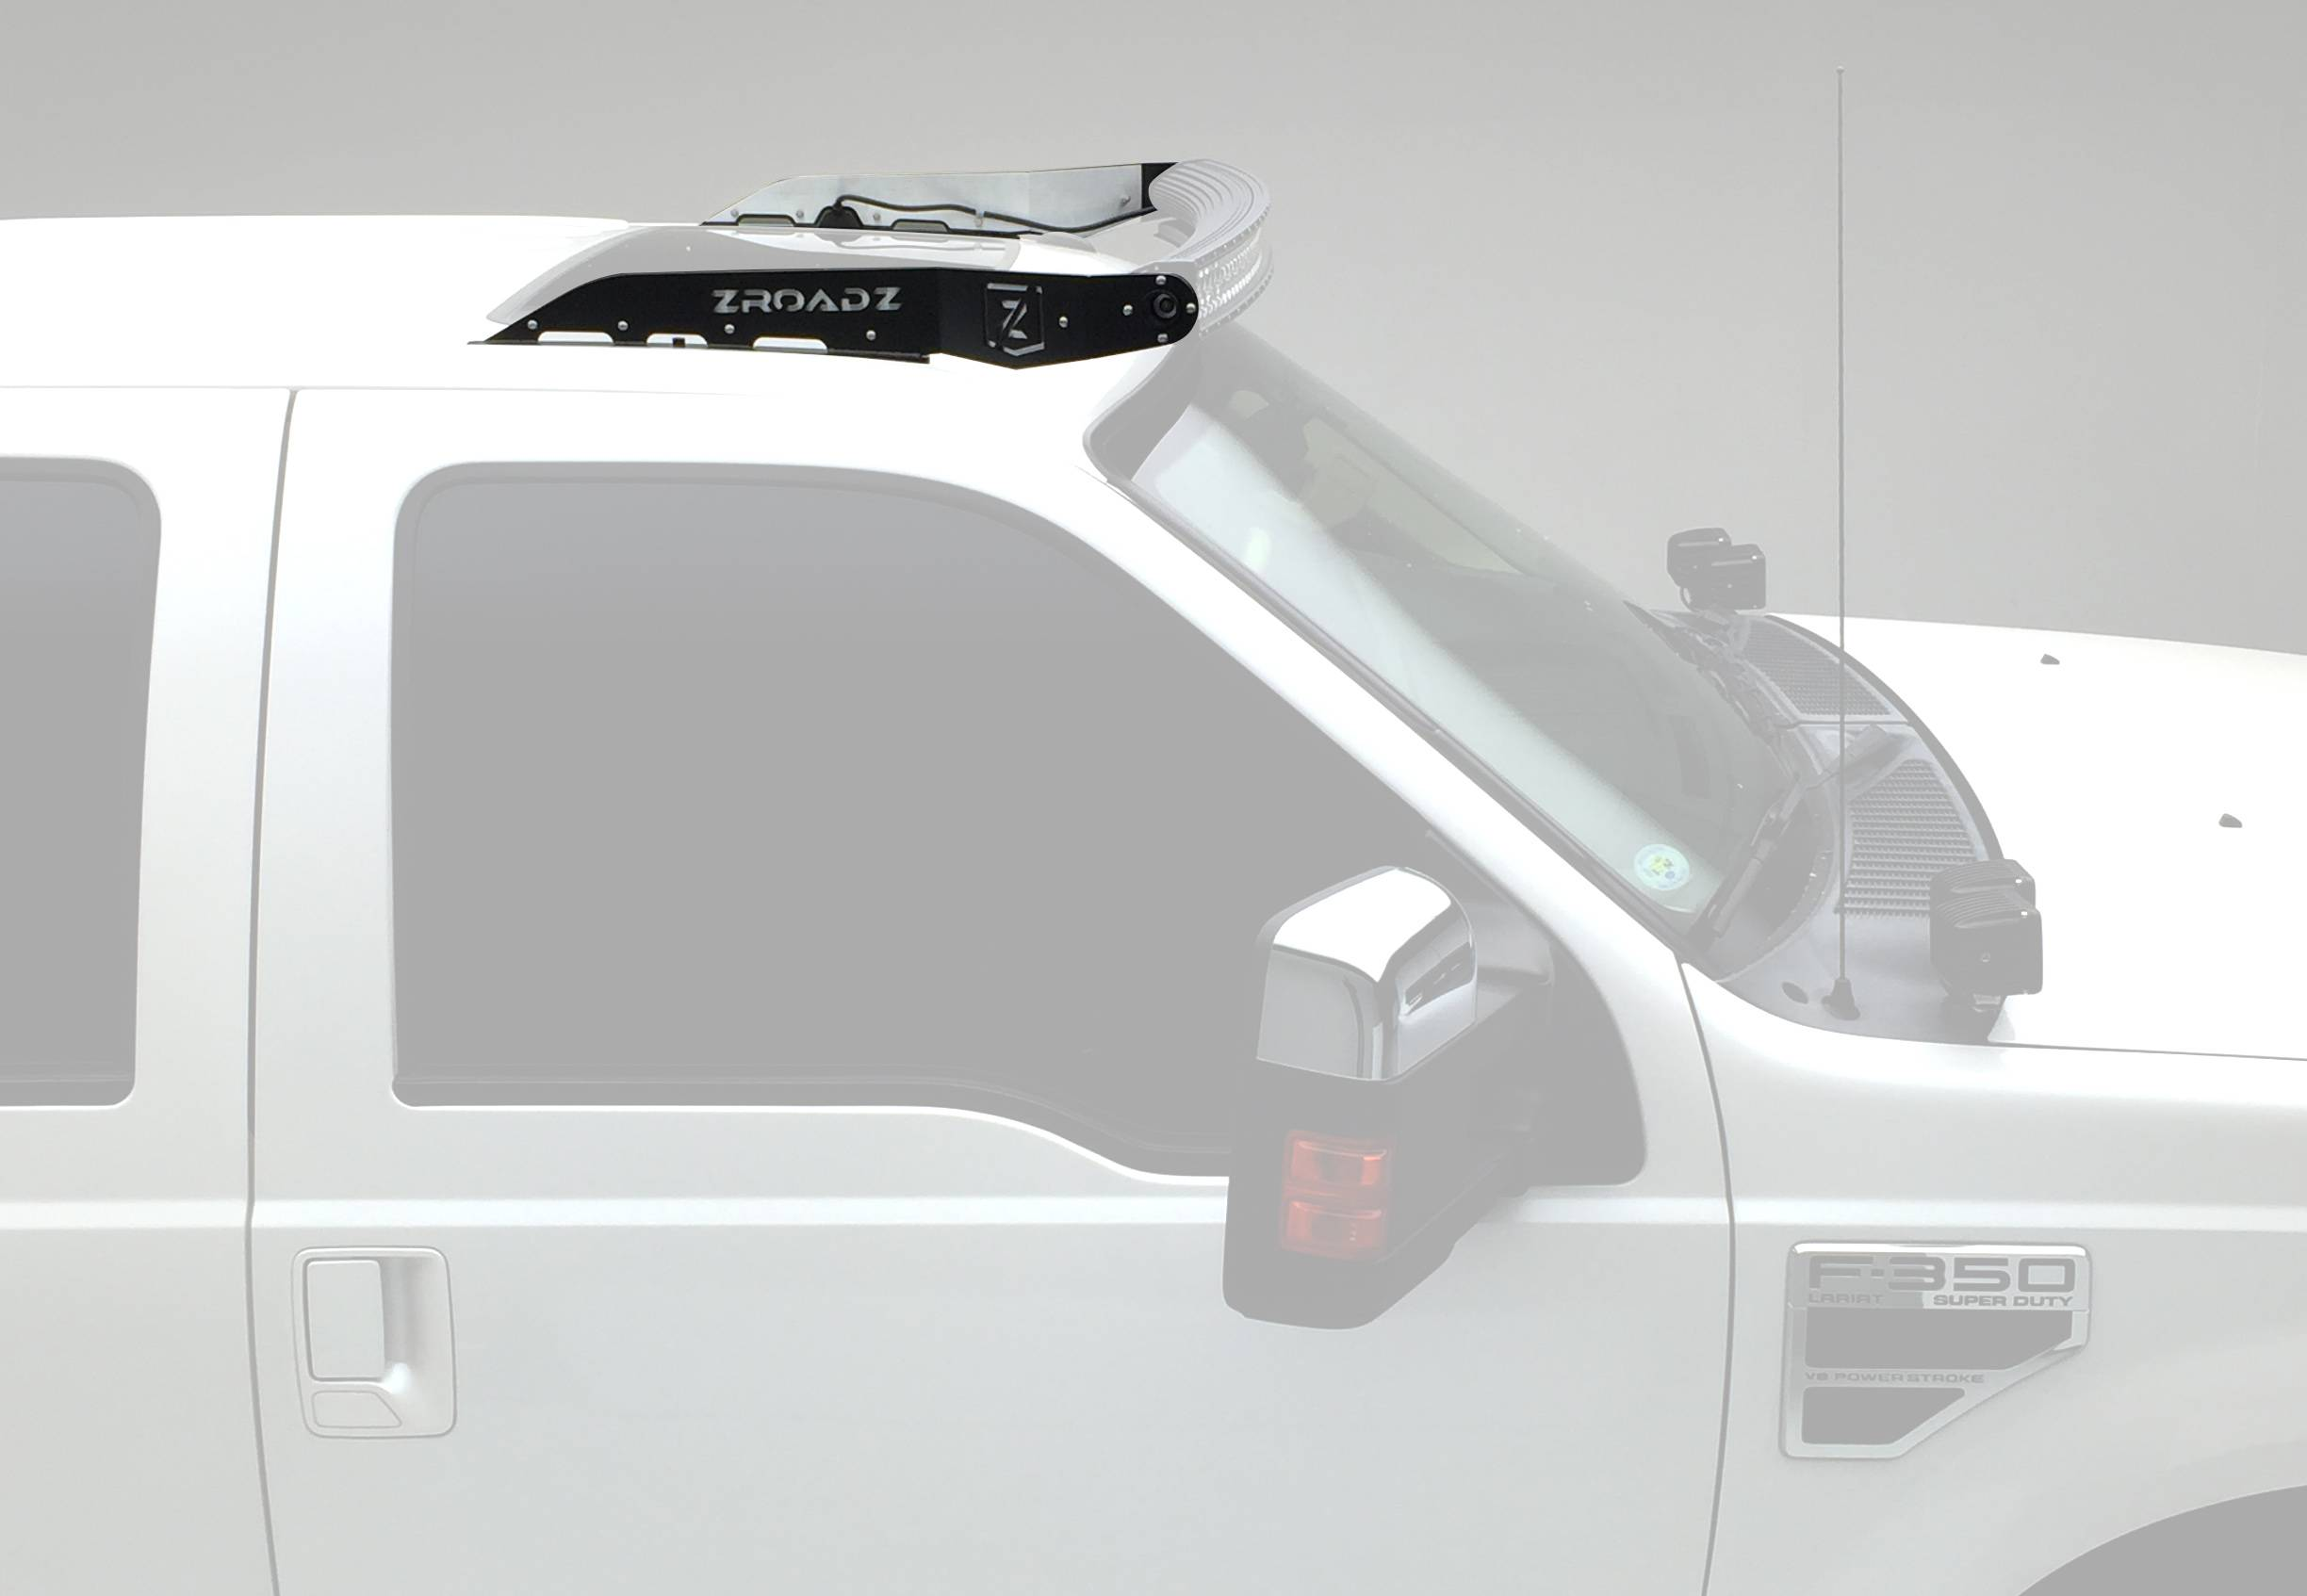 ZROADZ - 1999-2016 Ford Super Duty Front Roof LED Bracket to mount (1) 52 Inch Staight LED Light Bar - PN #Z331161